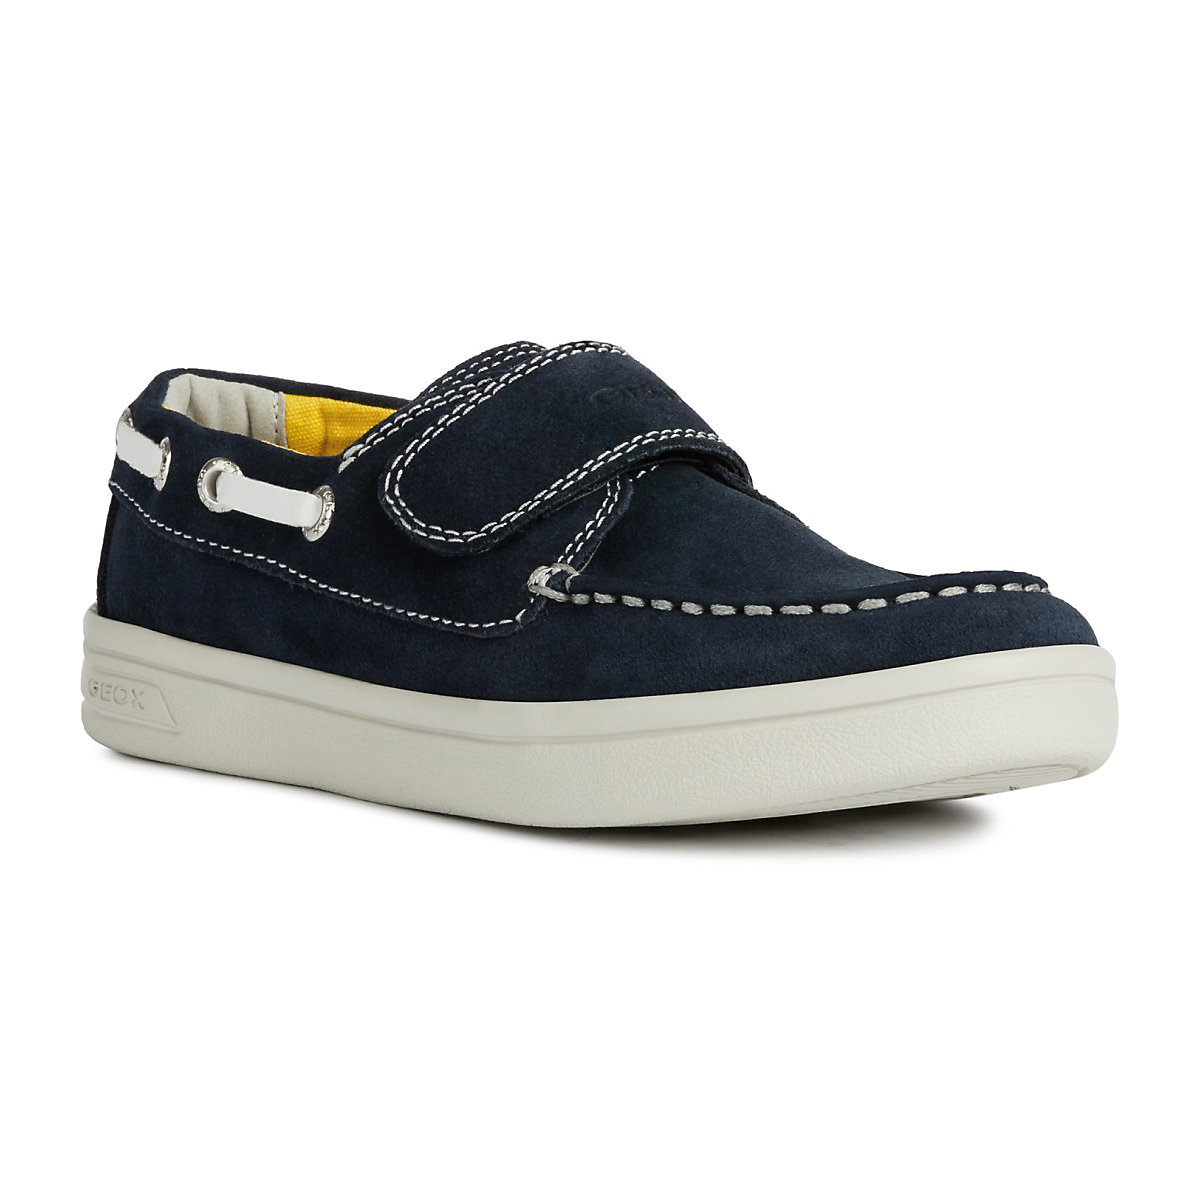 GEOX Children Casual Shoes 10614440  Loafers for boys moccasins boots convenient comfortable footwear light weight demi-season 2018 flower print men loafers casual shoes rivets studded round toe spikes men elastic slip on flat shoes sapatos shoes mens